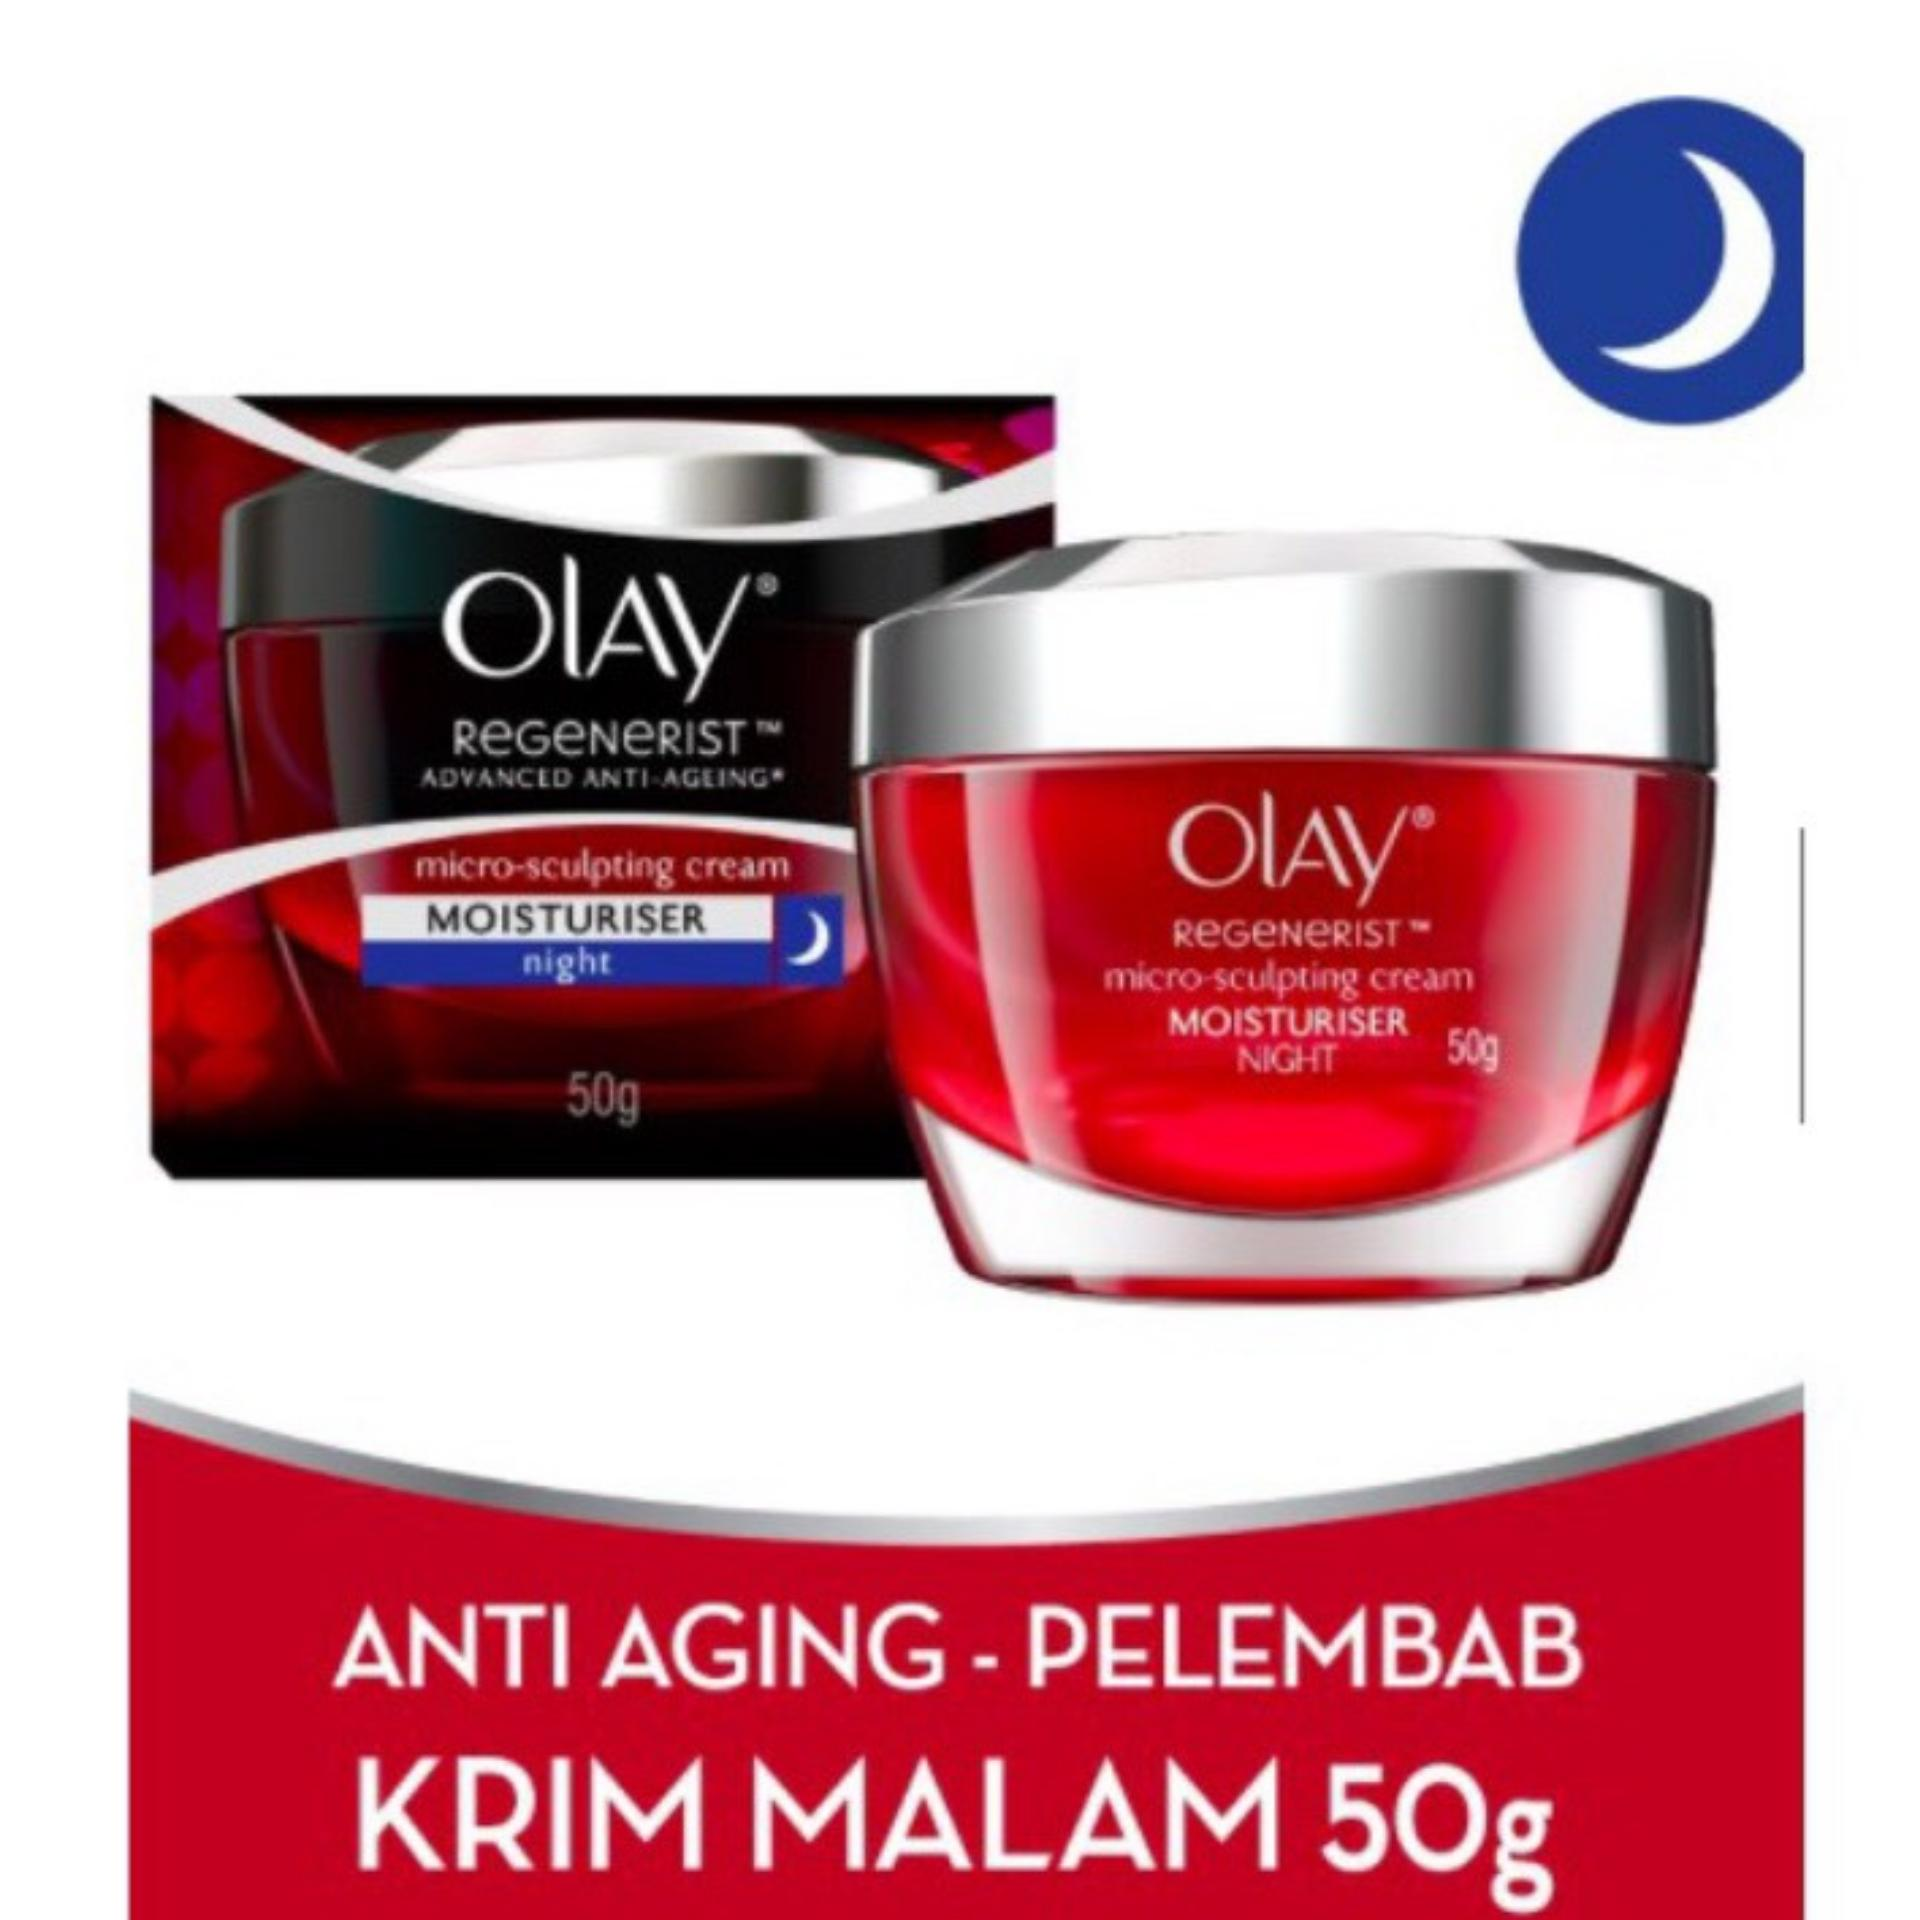 Spesifikasi Olay Regenerist Micro Sculpting Cream Night 50Gr Original Guarantee Krim Malam Anti Aging Olay Terbaru